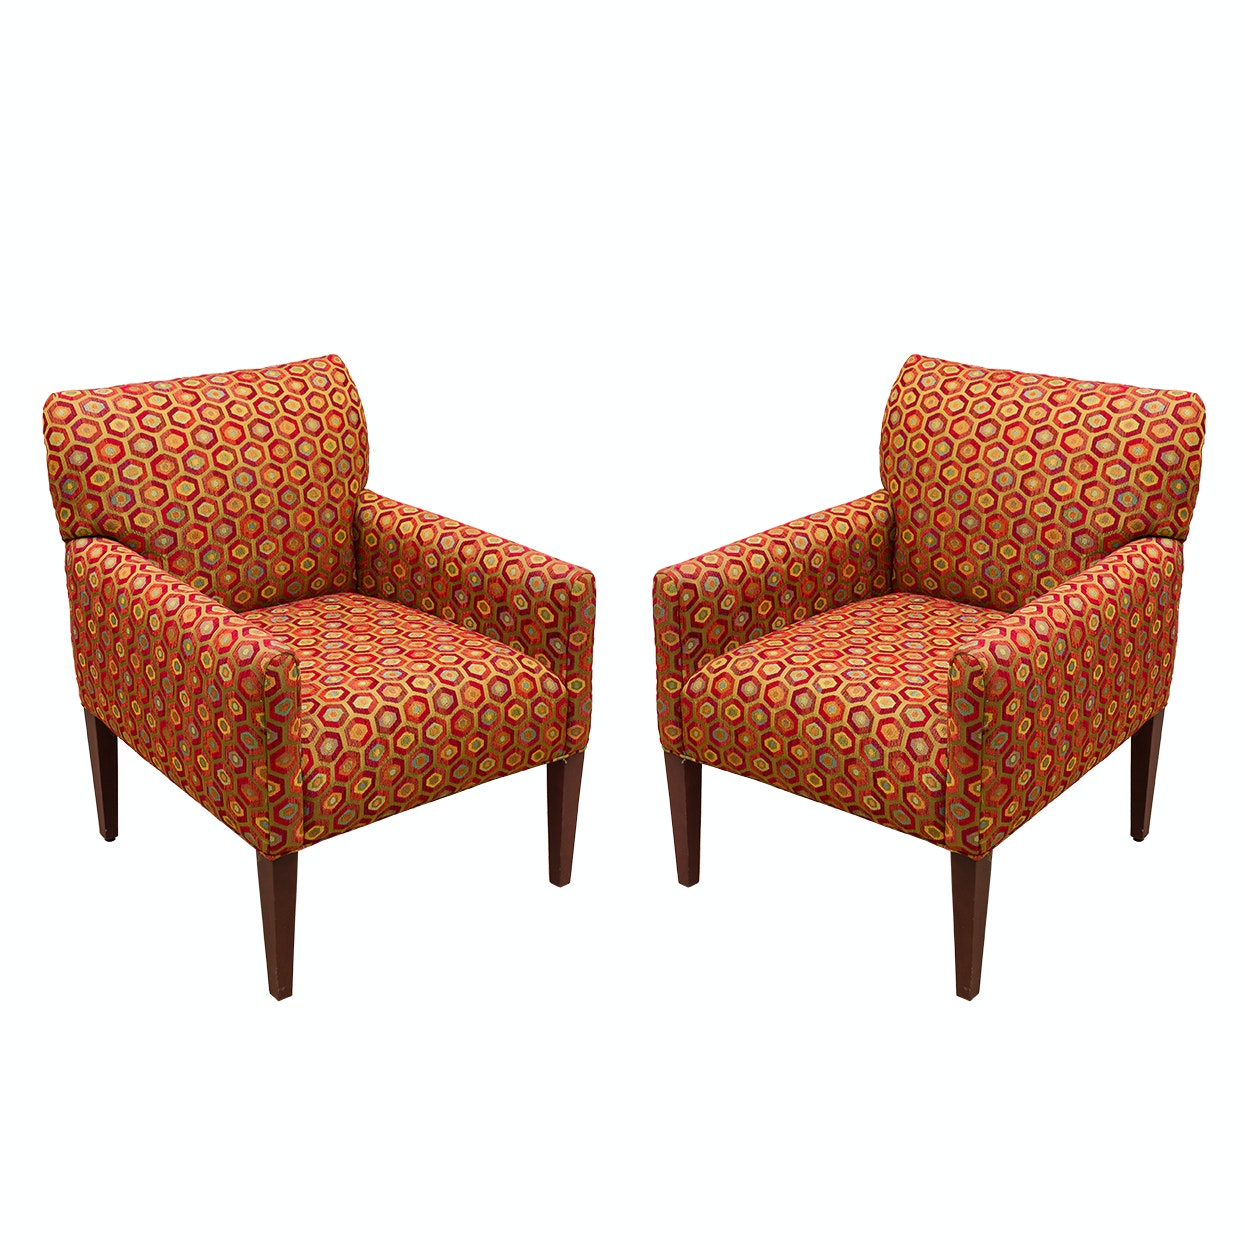 Upholstered Contemporary Armchairs